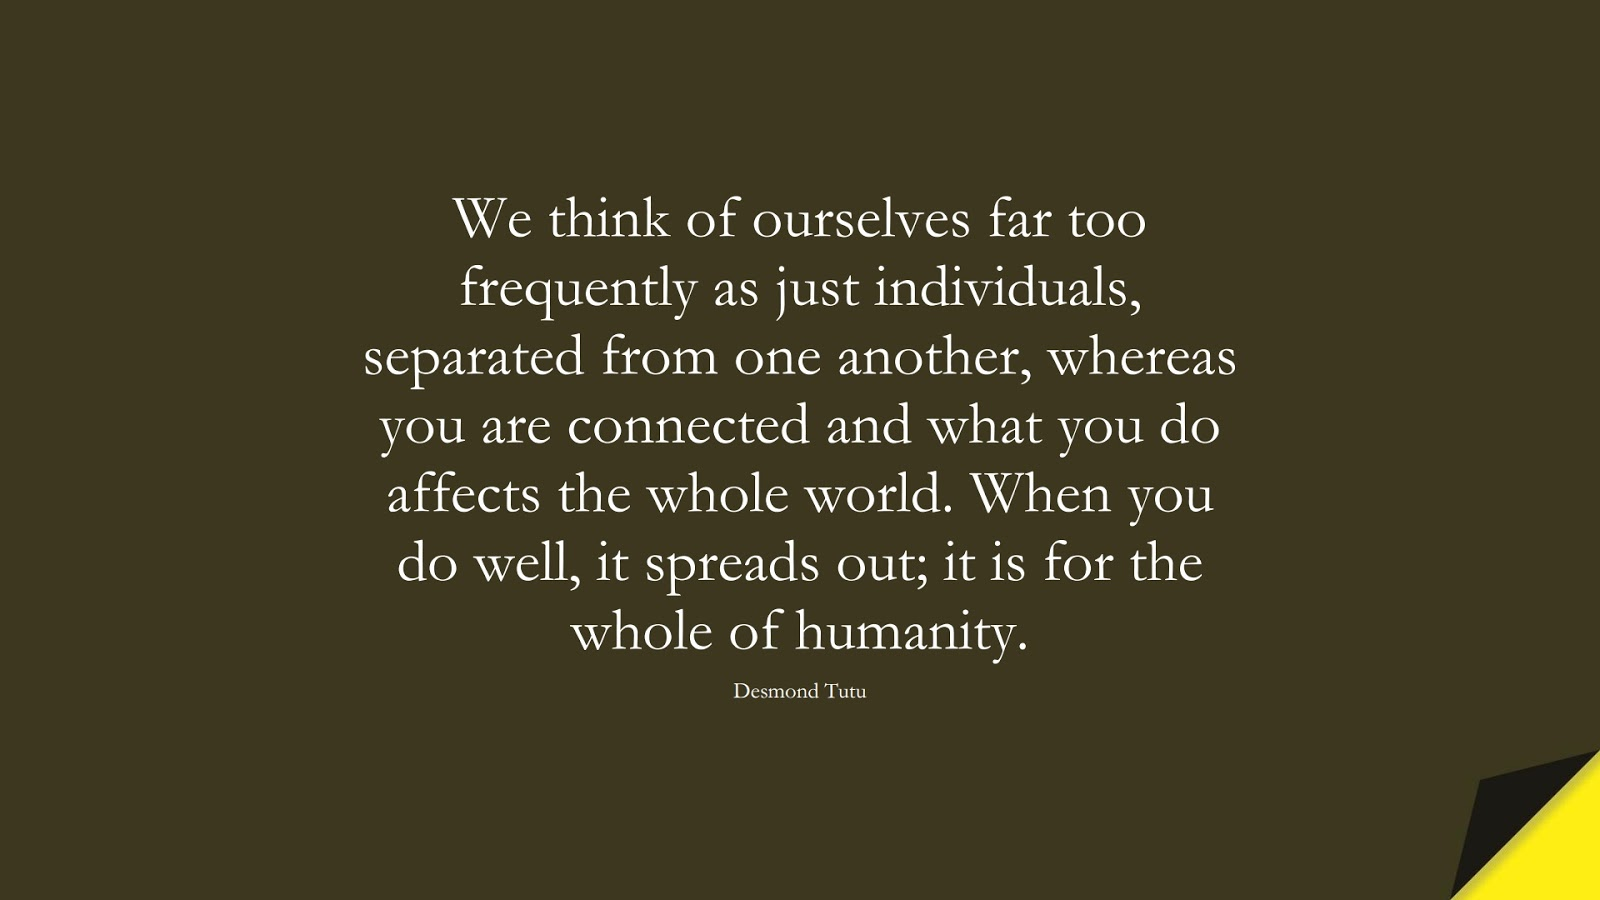 We think of ourselves far too frequently as just individuals, separated from one another, whereas you are connected and what you do affects the whole world. When you do well, it spreads out; it is for the whole of humanity. (Desmond Tutu);  #HumanityQuotes